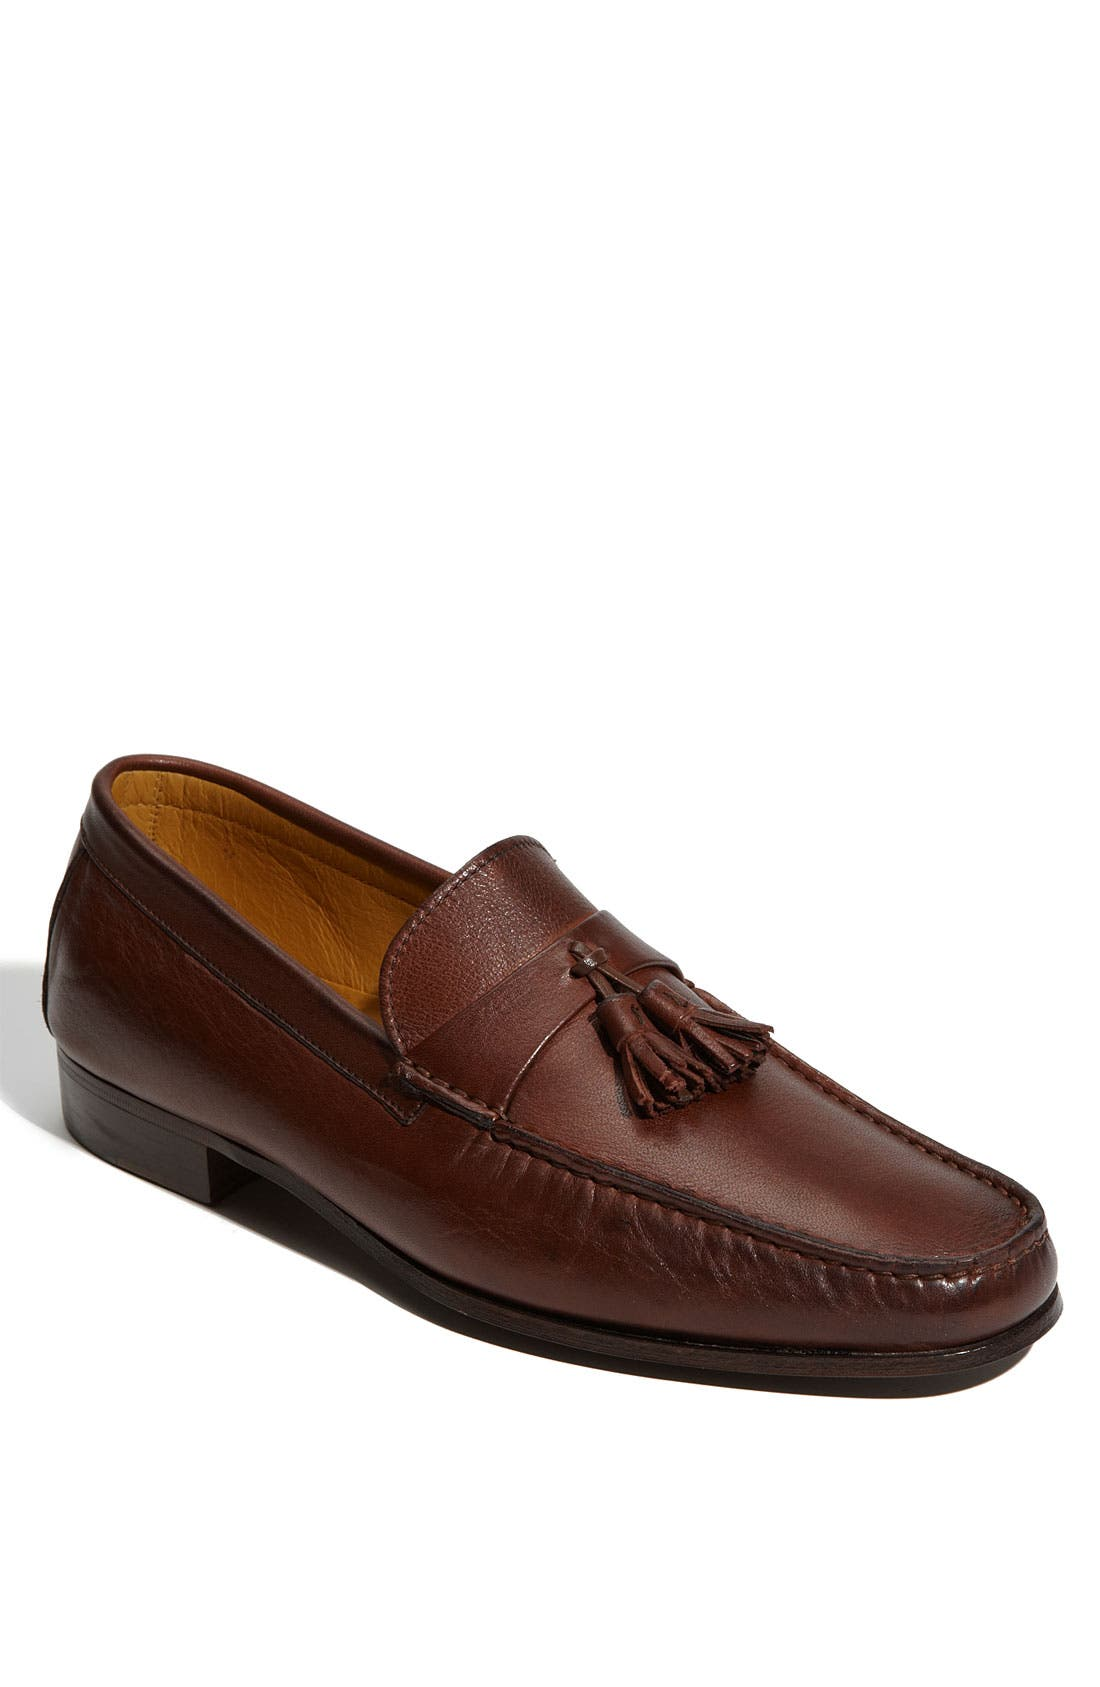 Alternate Image 1 Selected - Nordstrom 'Alex' Loafer